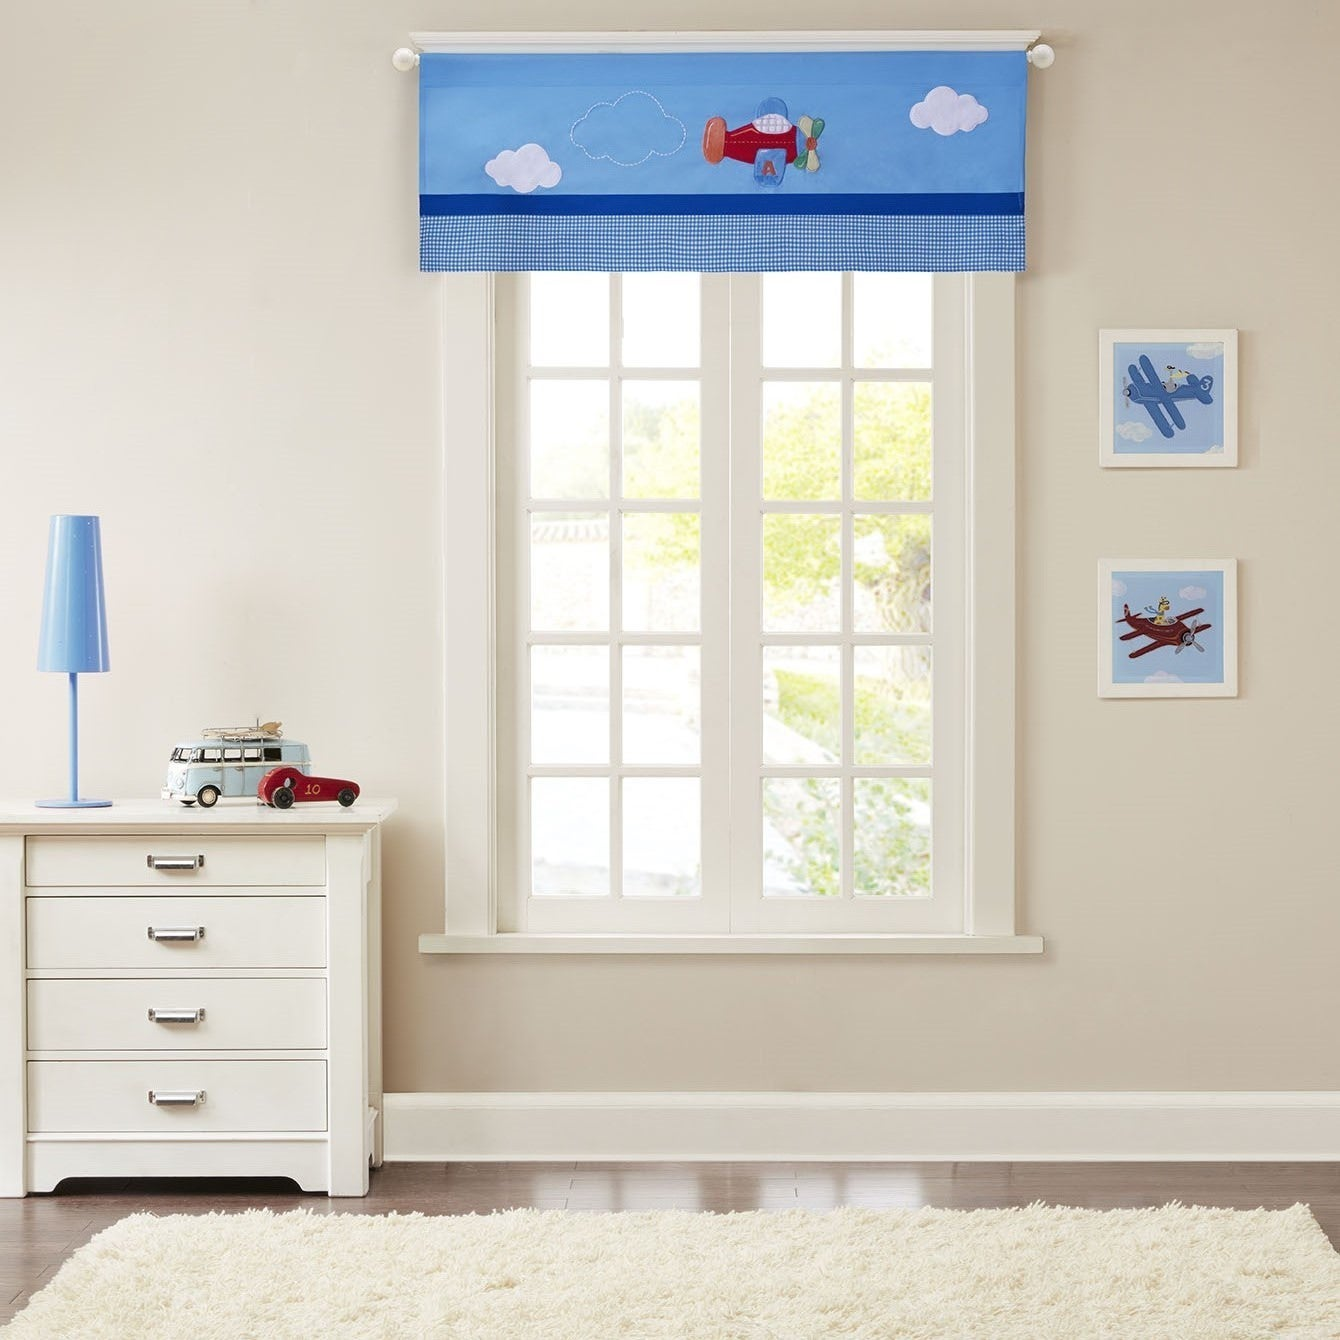 darkening eclipse window pin microfiber product see great kids pool this valance room